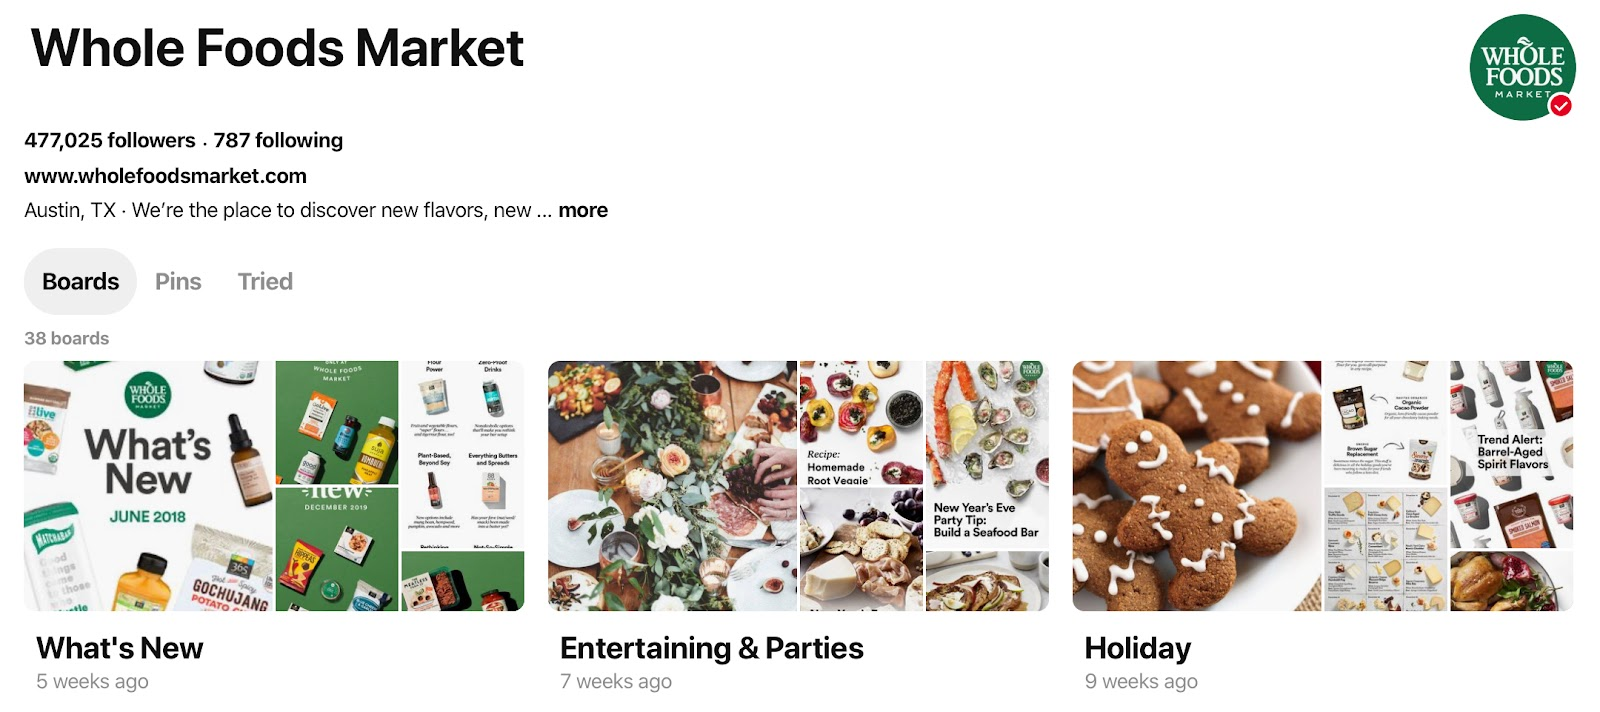 Whole Foods' content tailored to their Pinterest audience.